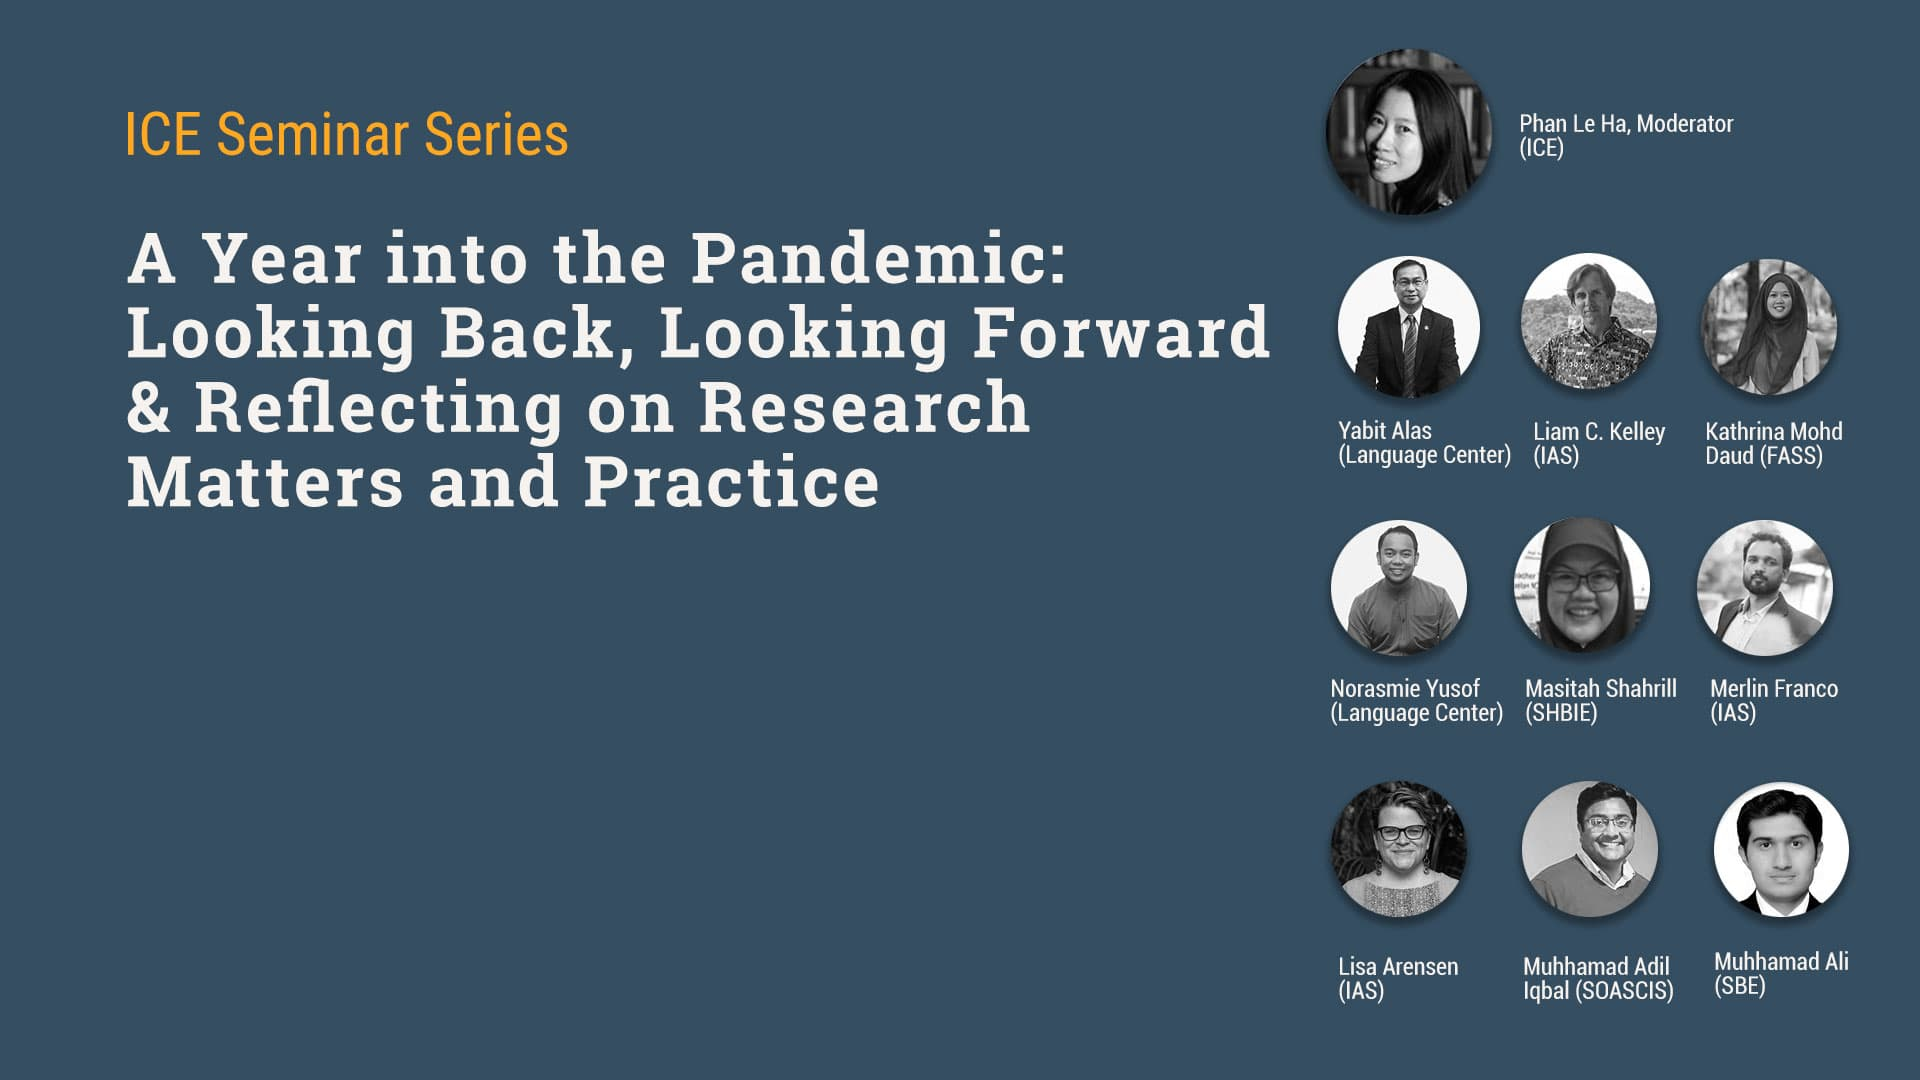 Forum on Research During the Pandemic